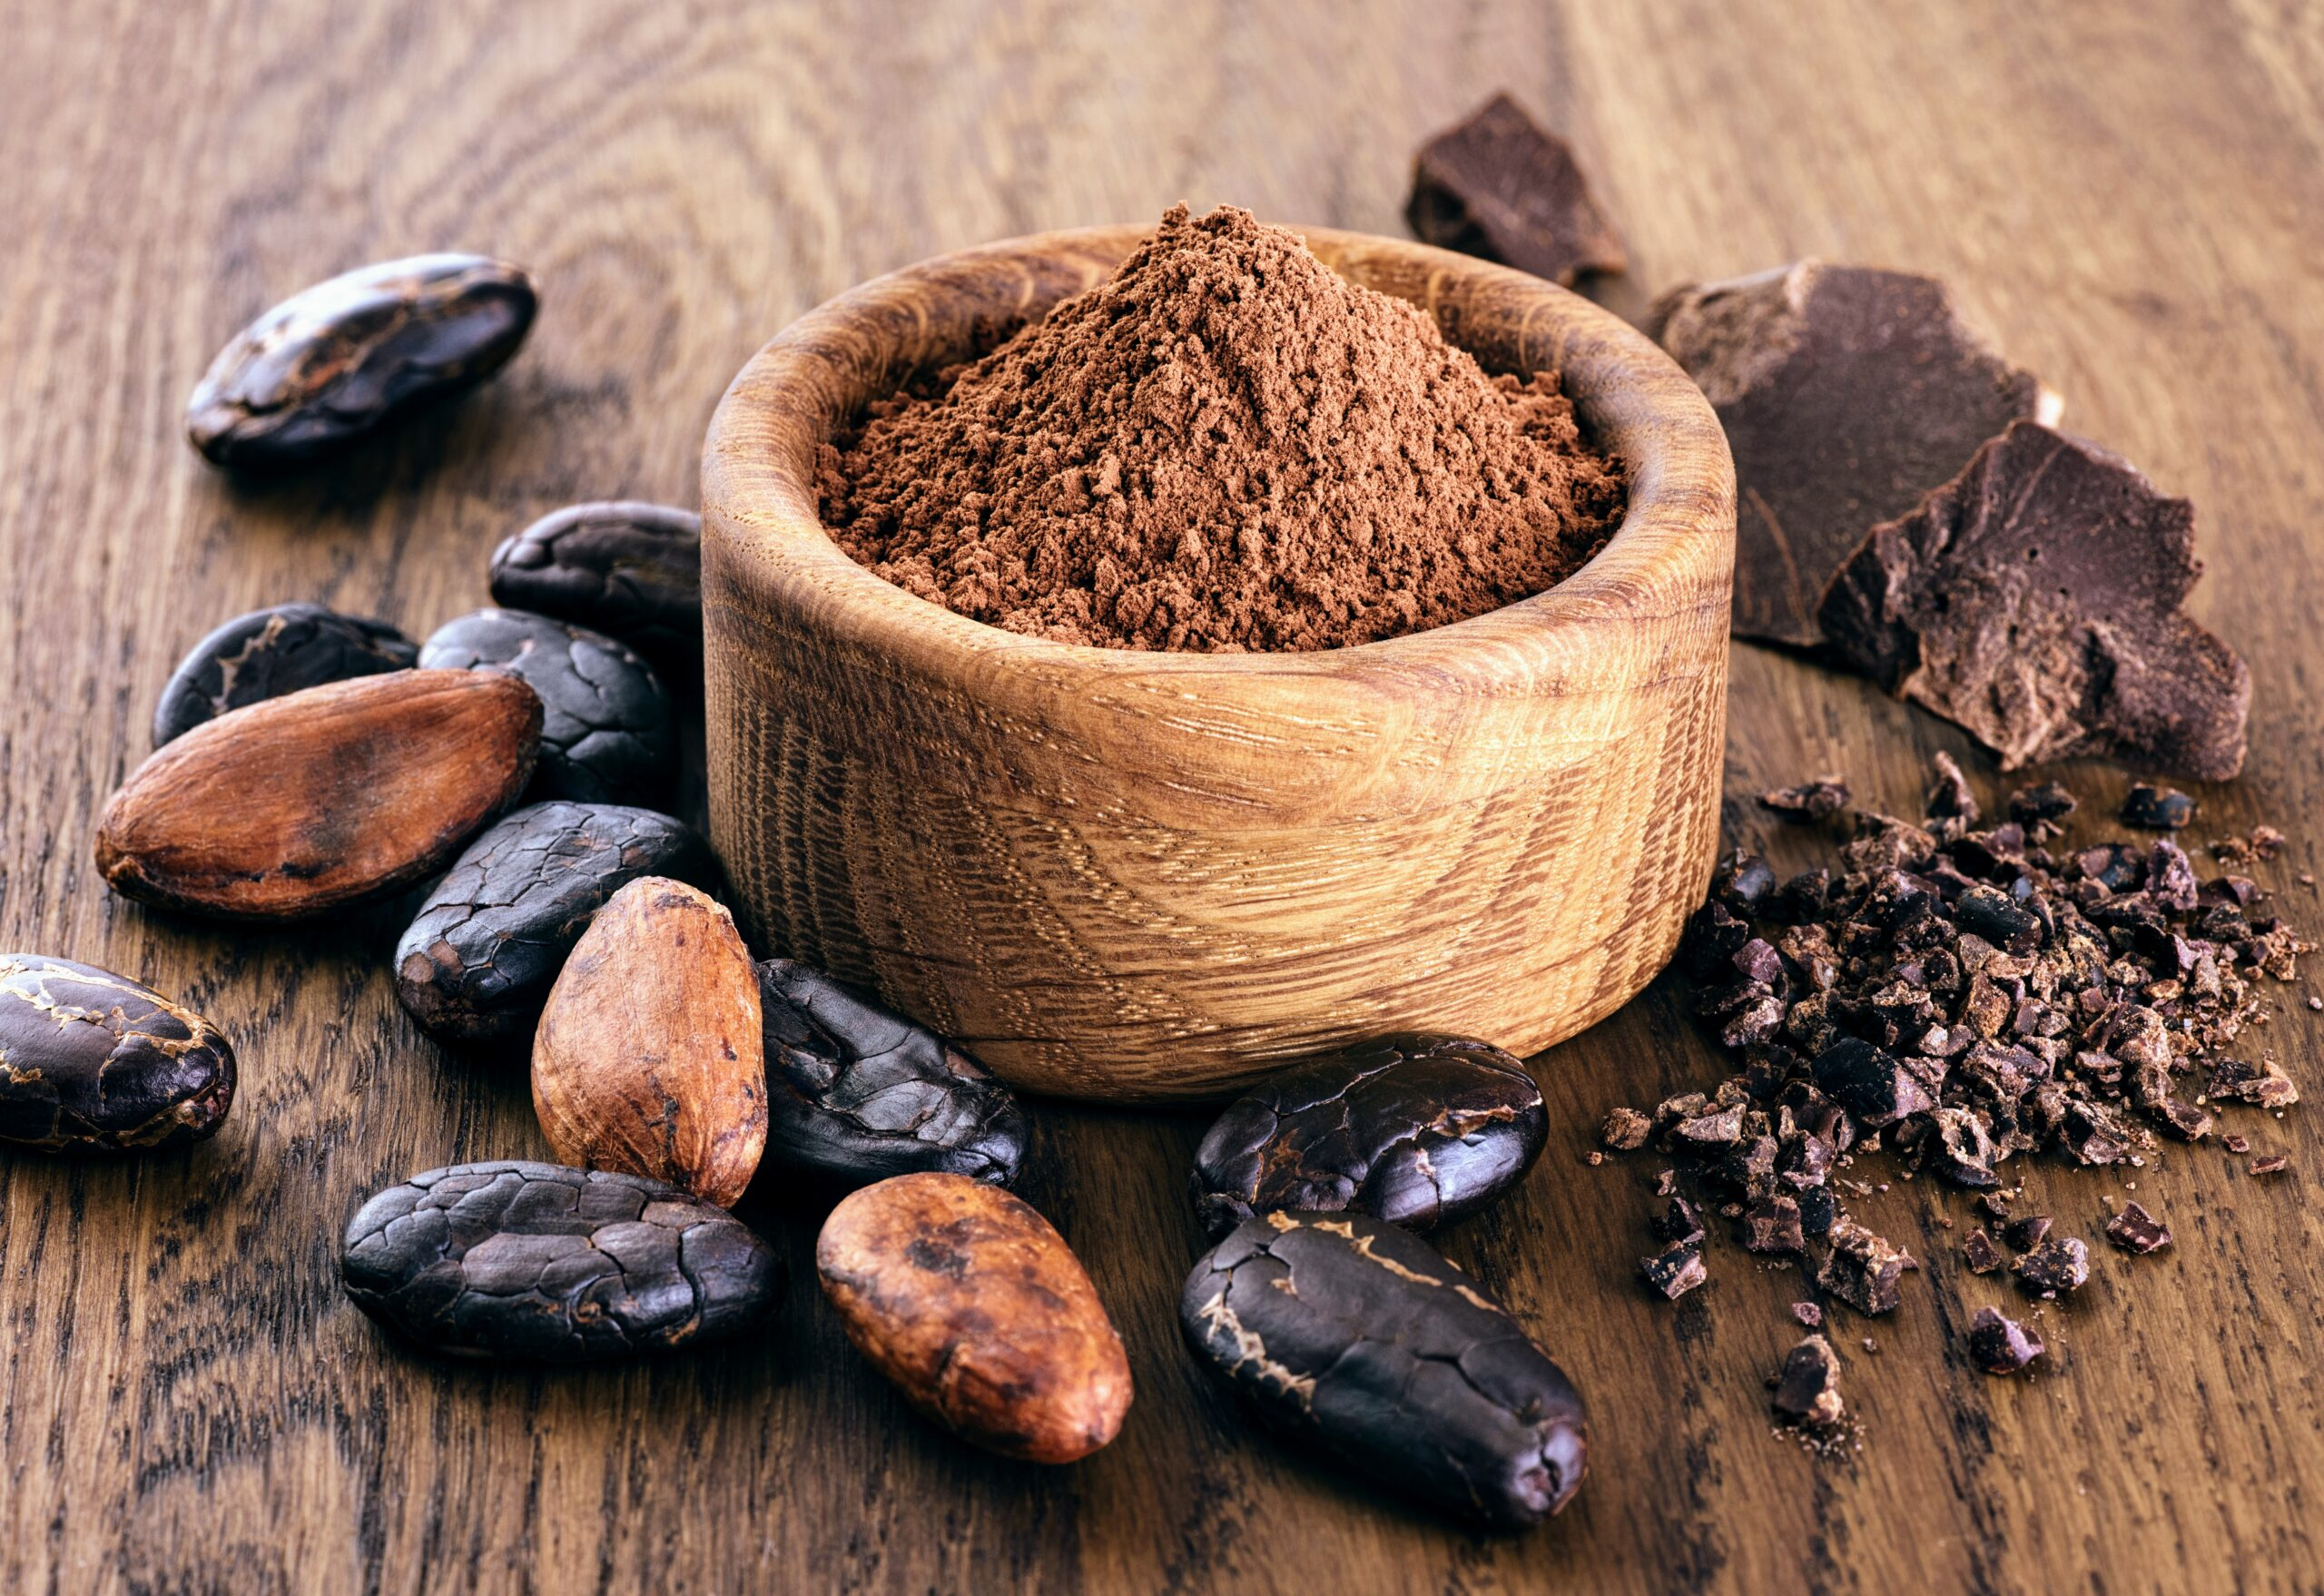 As a result, cocoa consumption could potentially help us age better and reduce the risk for developing cardiovascular disease, cancer, and other illnesses.